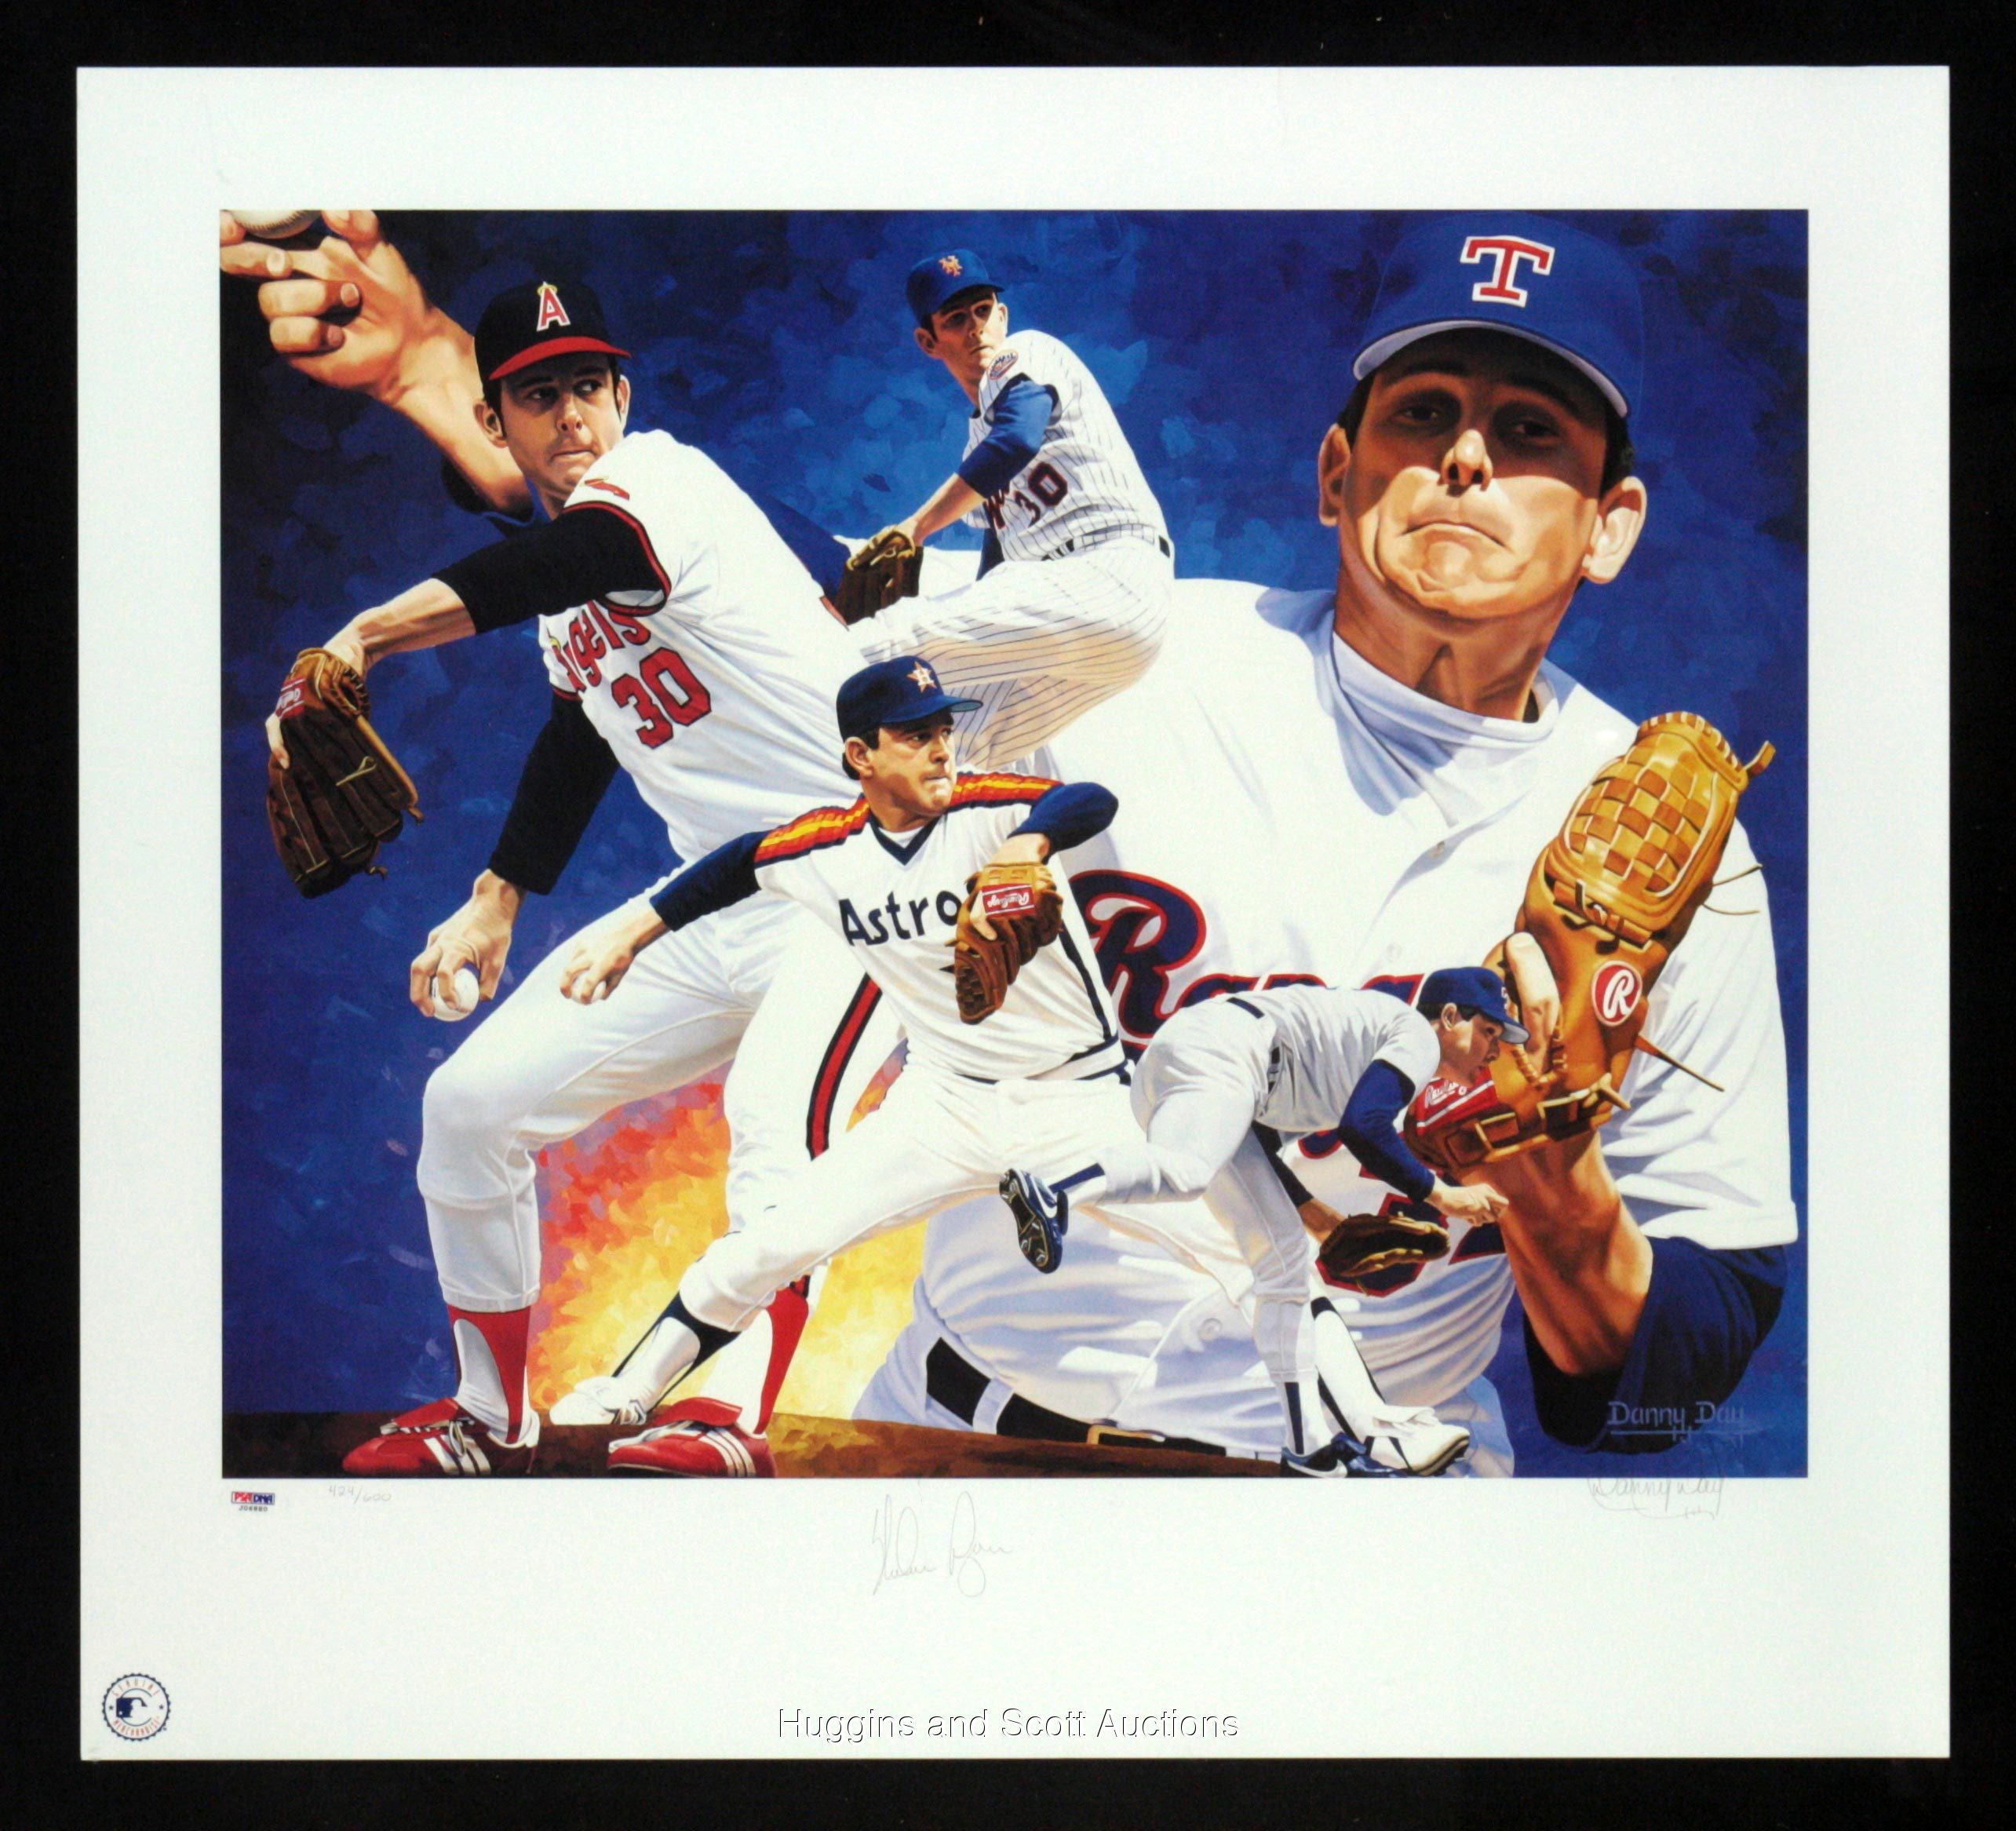 NOLAN RYAN AUTOGRAPHED LIMITED EDITION HALL OF FAME LITHOGRAPH BY DANNY DAY